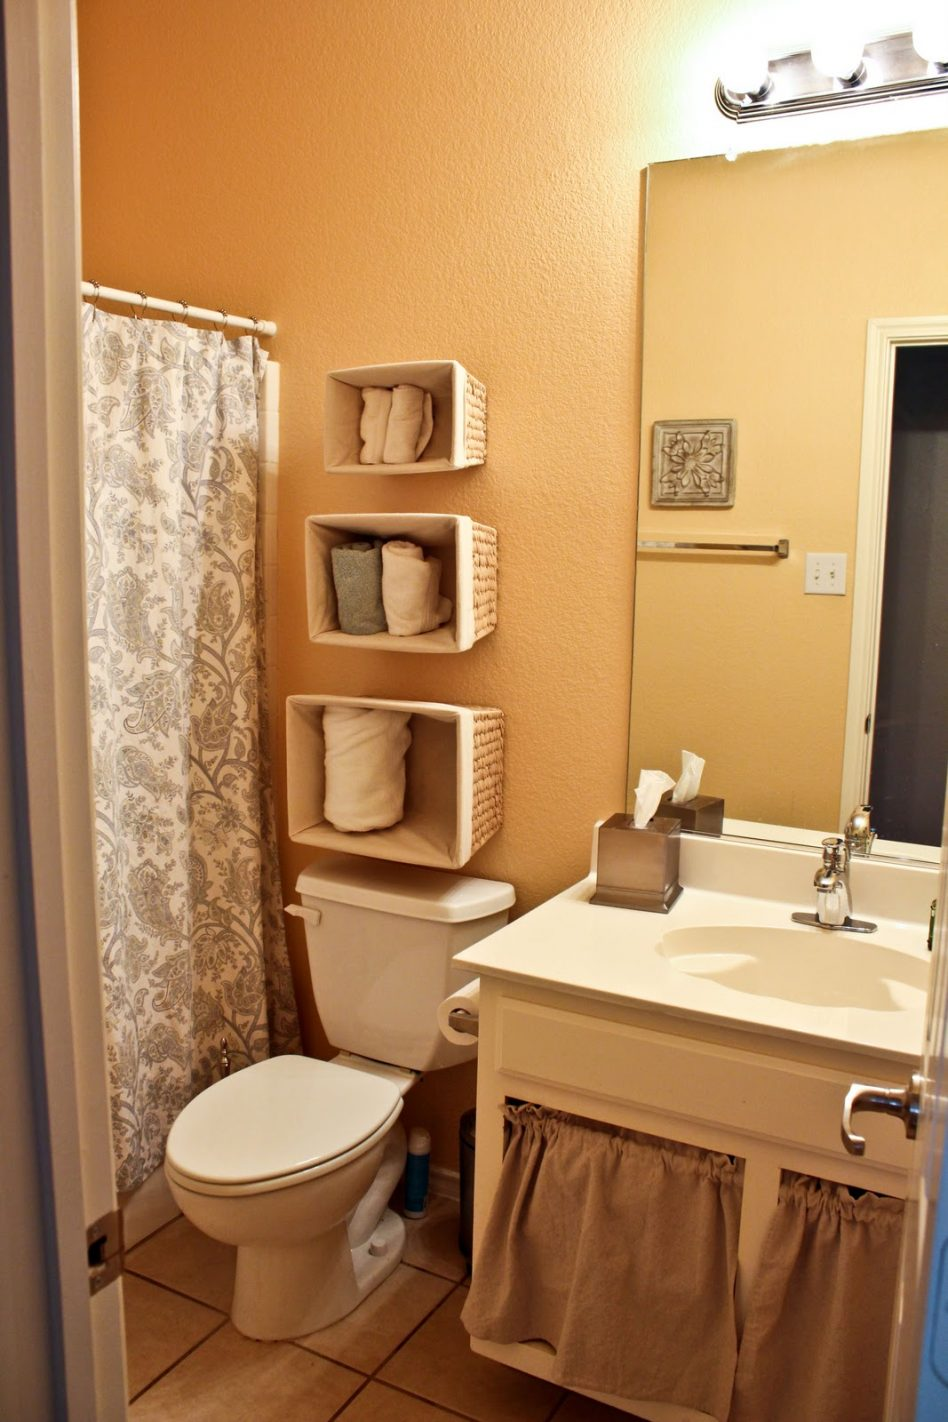 bathroom:Bathroom Small Pictures Shower Room Storage Very Narrow Best Fascinating Diy Bathroom Small Pictures